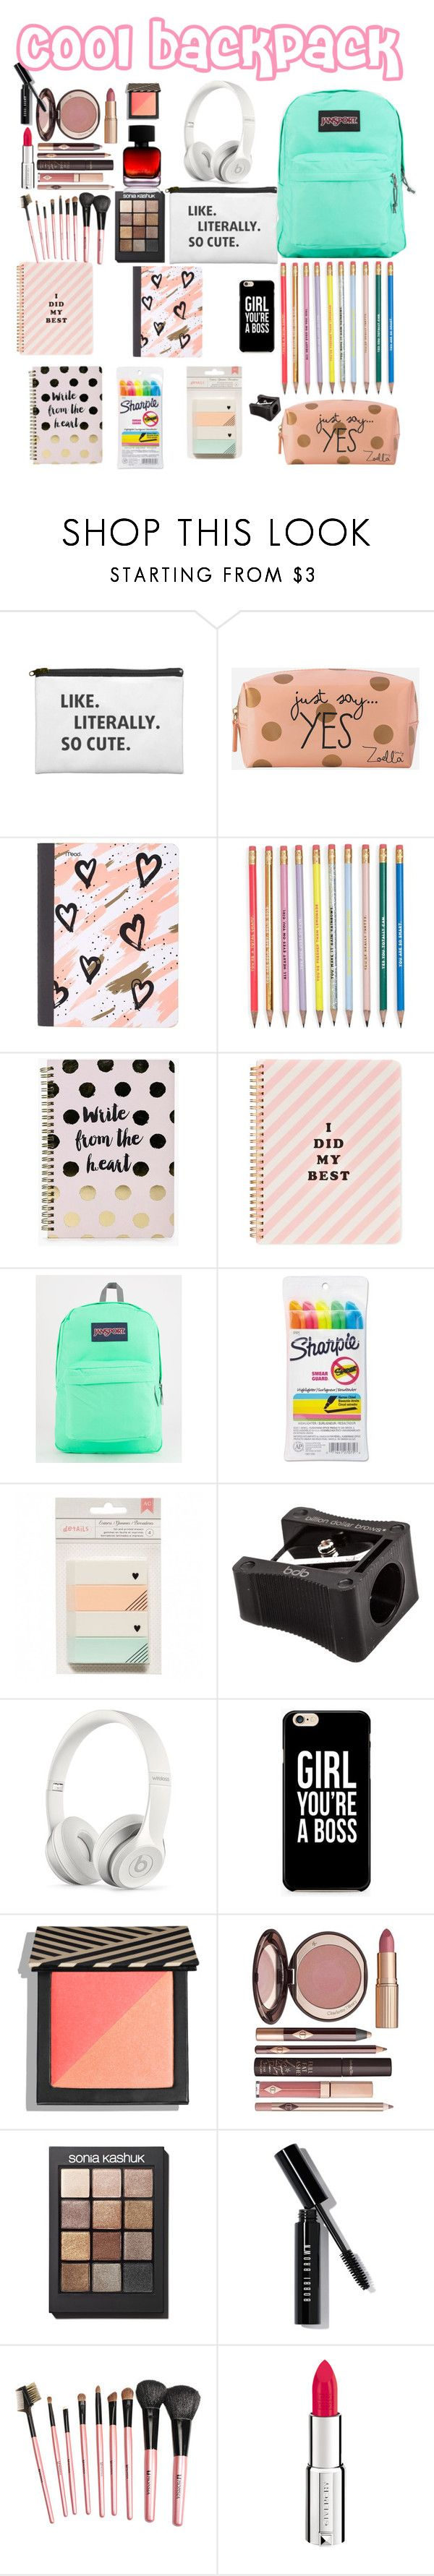 """What is in my backpack - cool backpack"" by littlestylistn ❤ liked on Polyvore featuring Zoella Beauty, Mead, Boohoo, ban.do, JanSport, Sharpie, Billion Dollar Brows, Beats by Dr. Dre, Charlotte Tilbury and Sonia Kashuk"